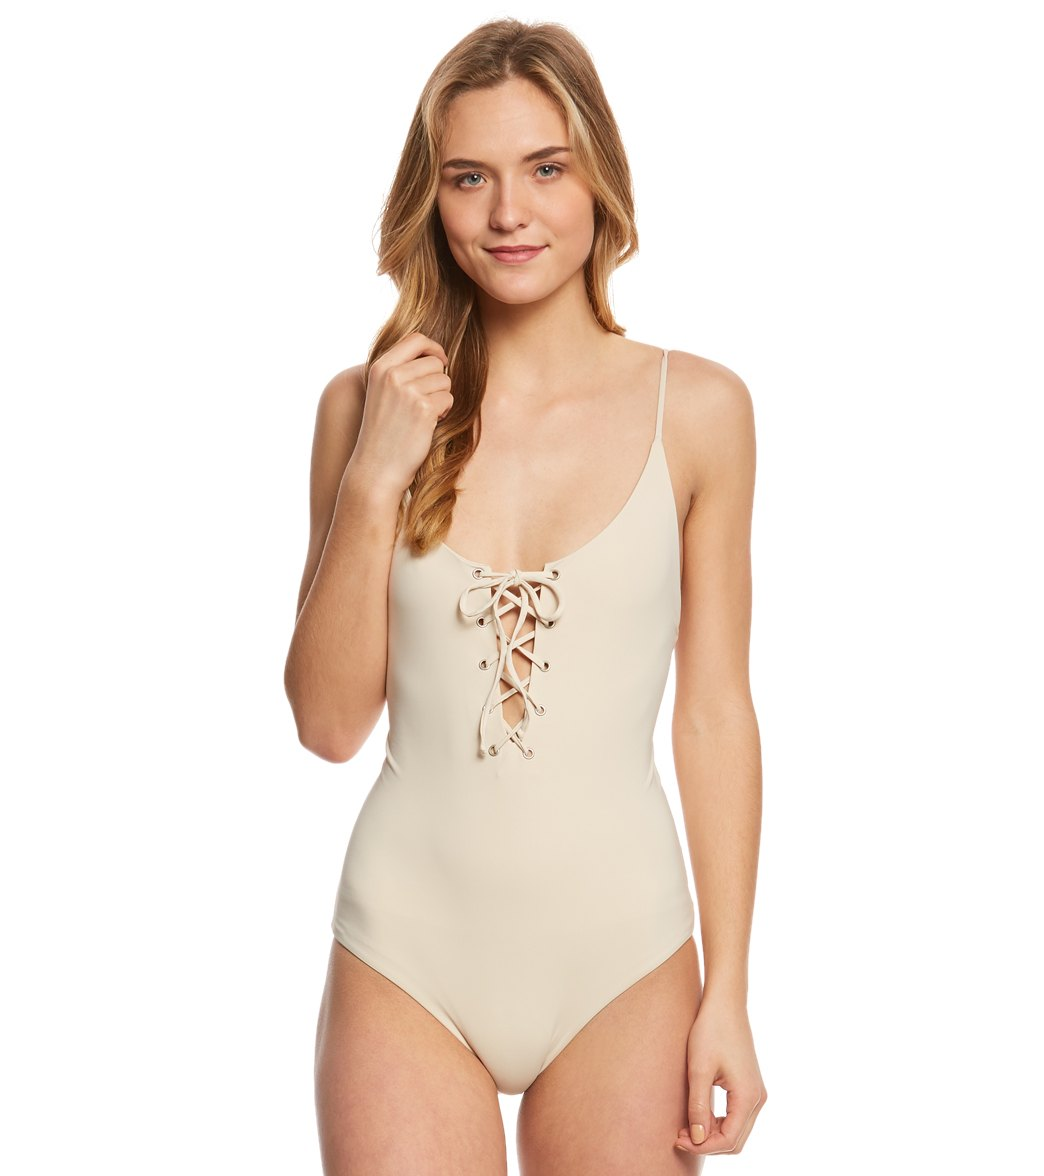 bb33f4513de56 Tavik Solid Monahan One Piece Swimsuit at SwimOutlet.com - Free Shipping